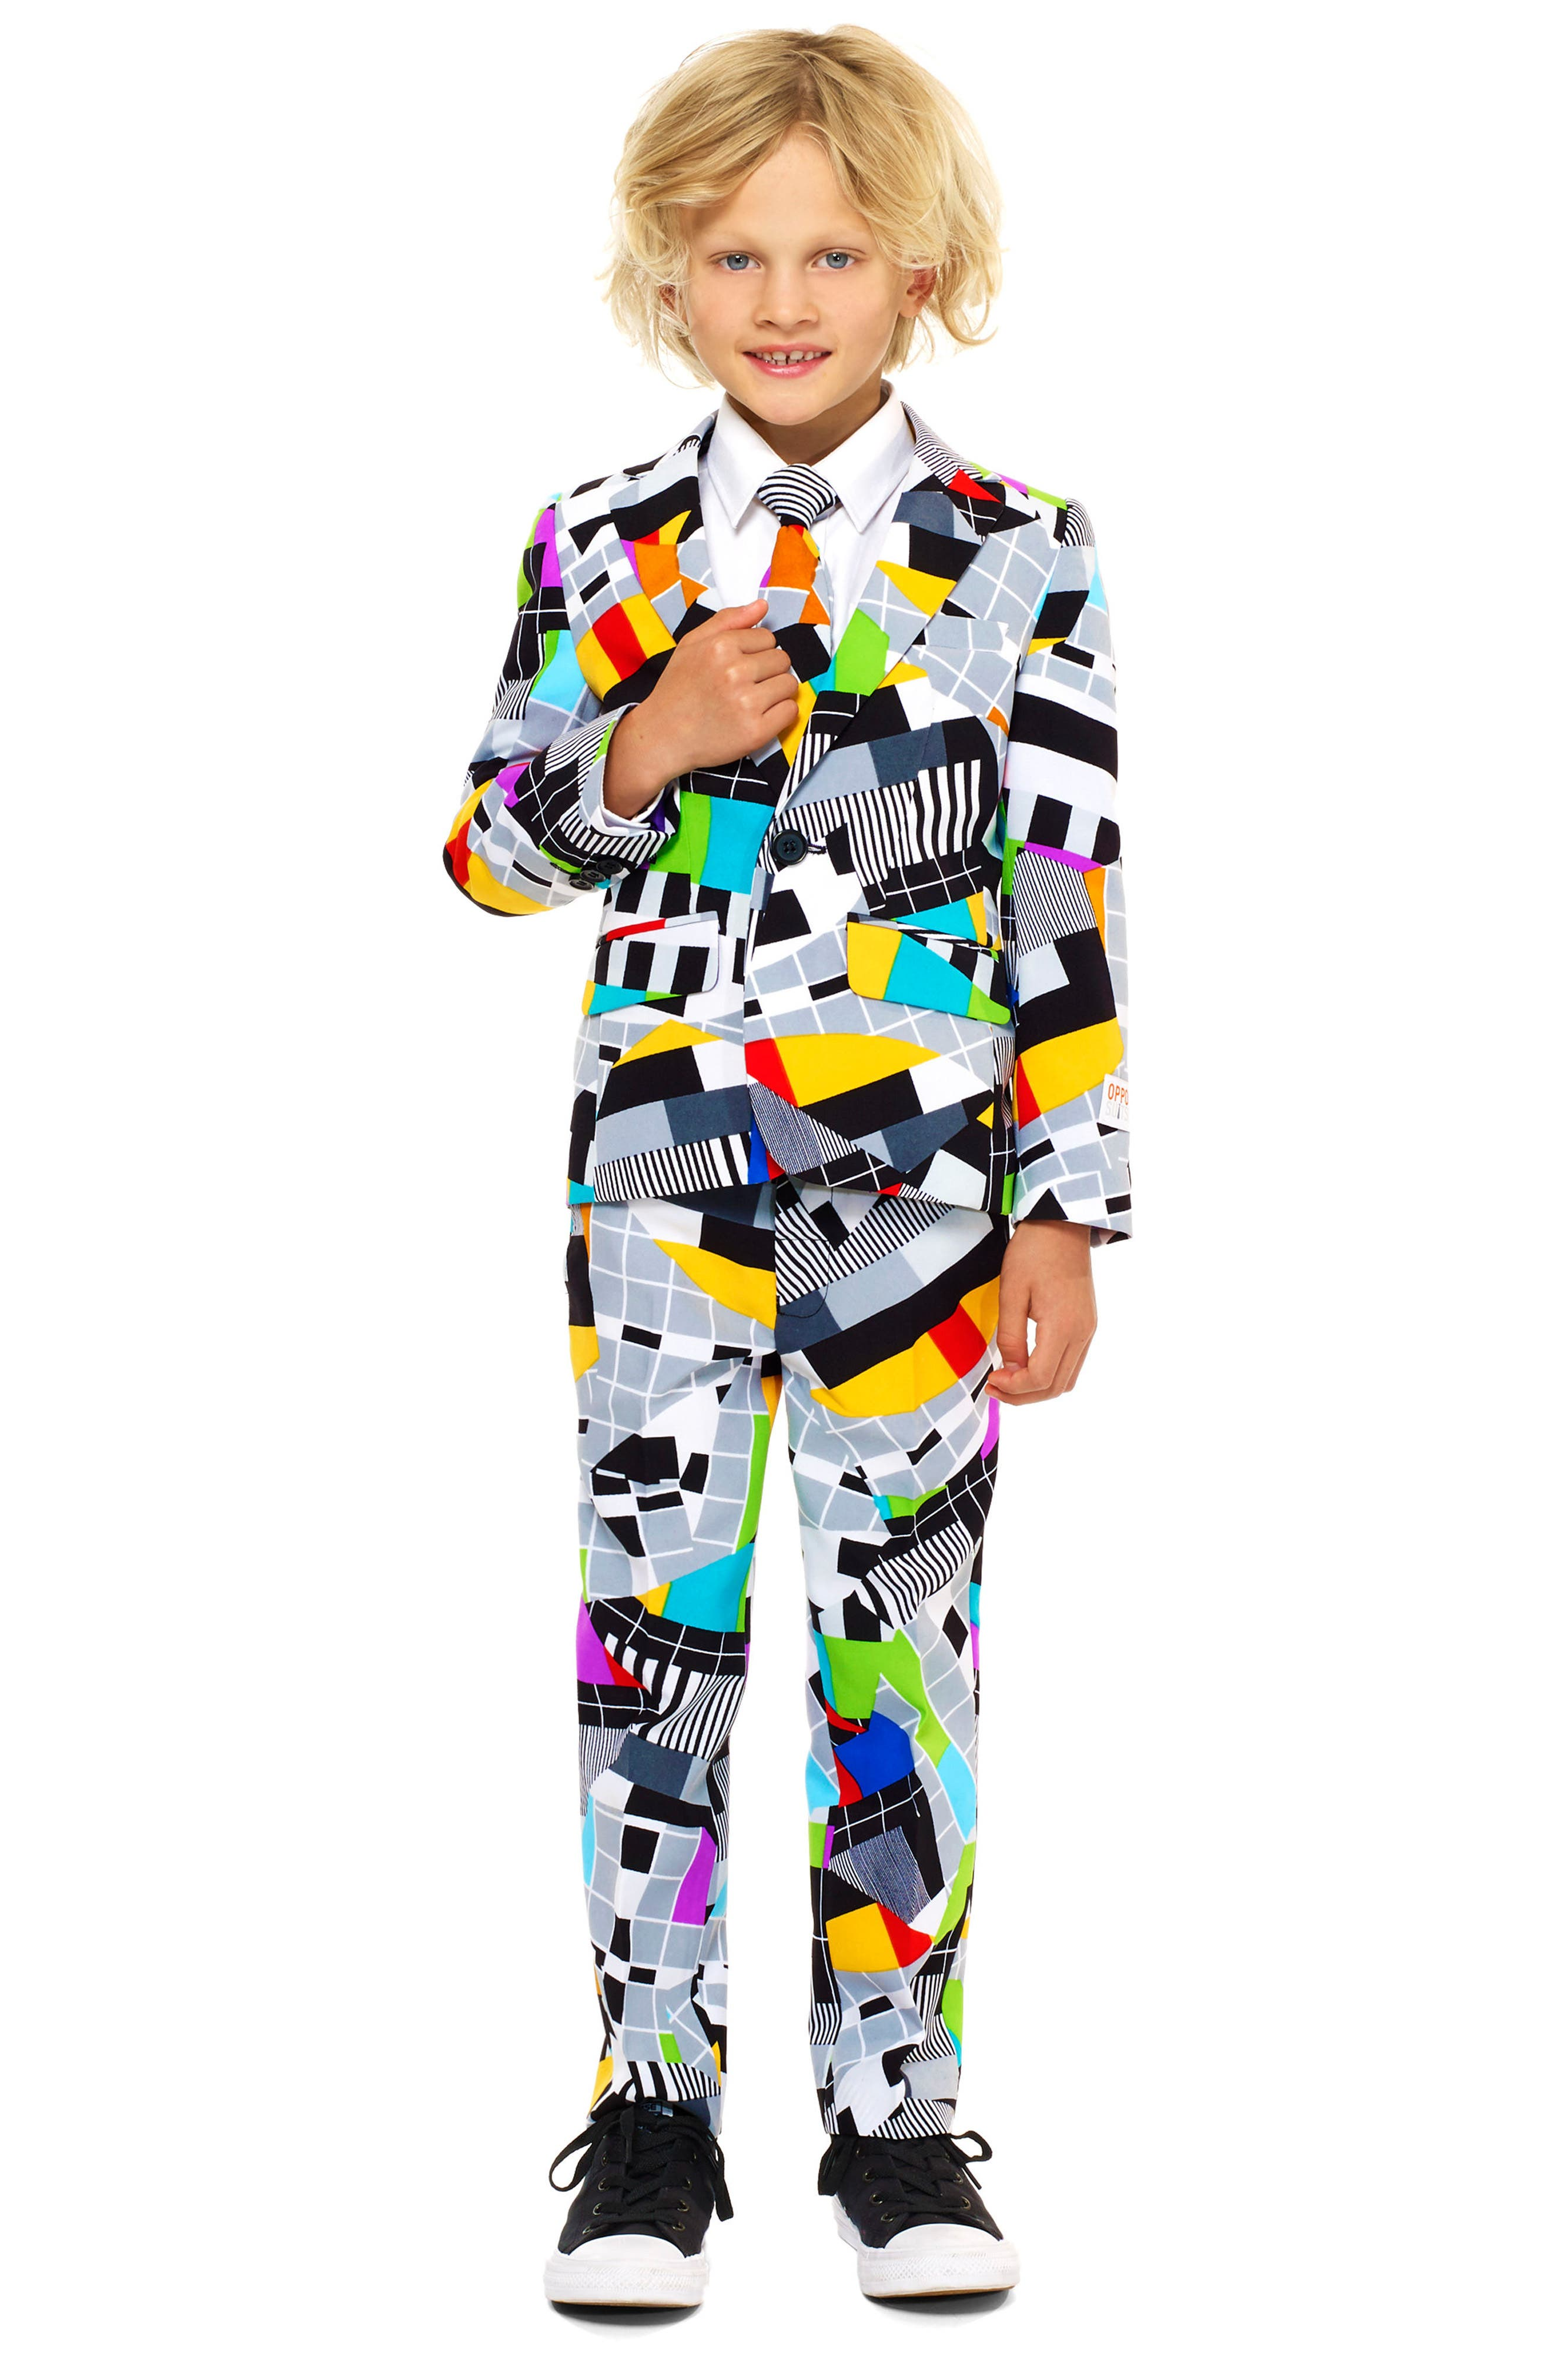 Alternate Image 1 Selected - Oppo Testival Two-Piece Suit with Tie (Toddler Boys, Little Boys & Big Boys)